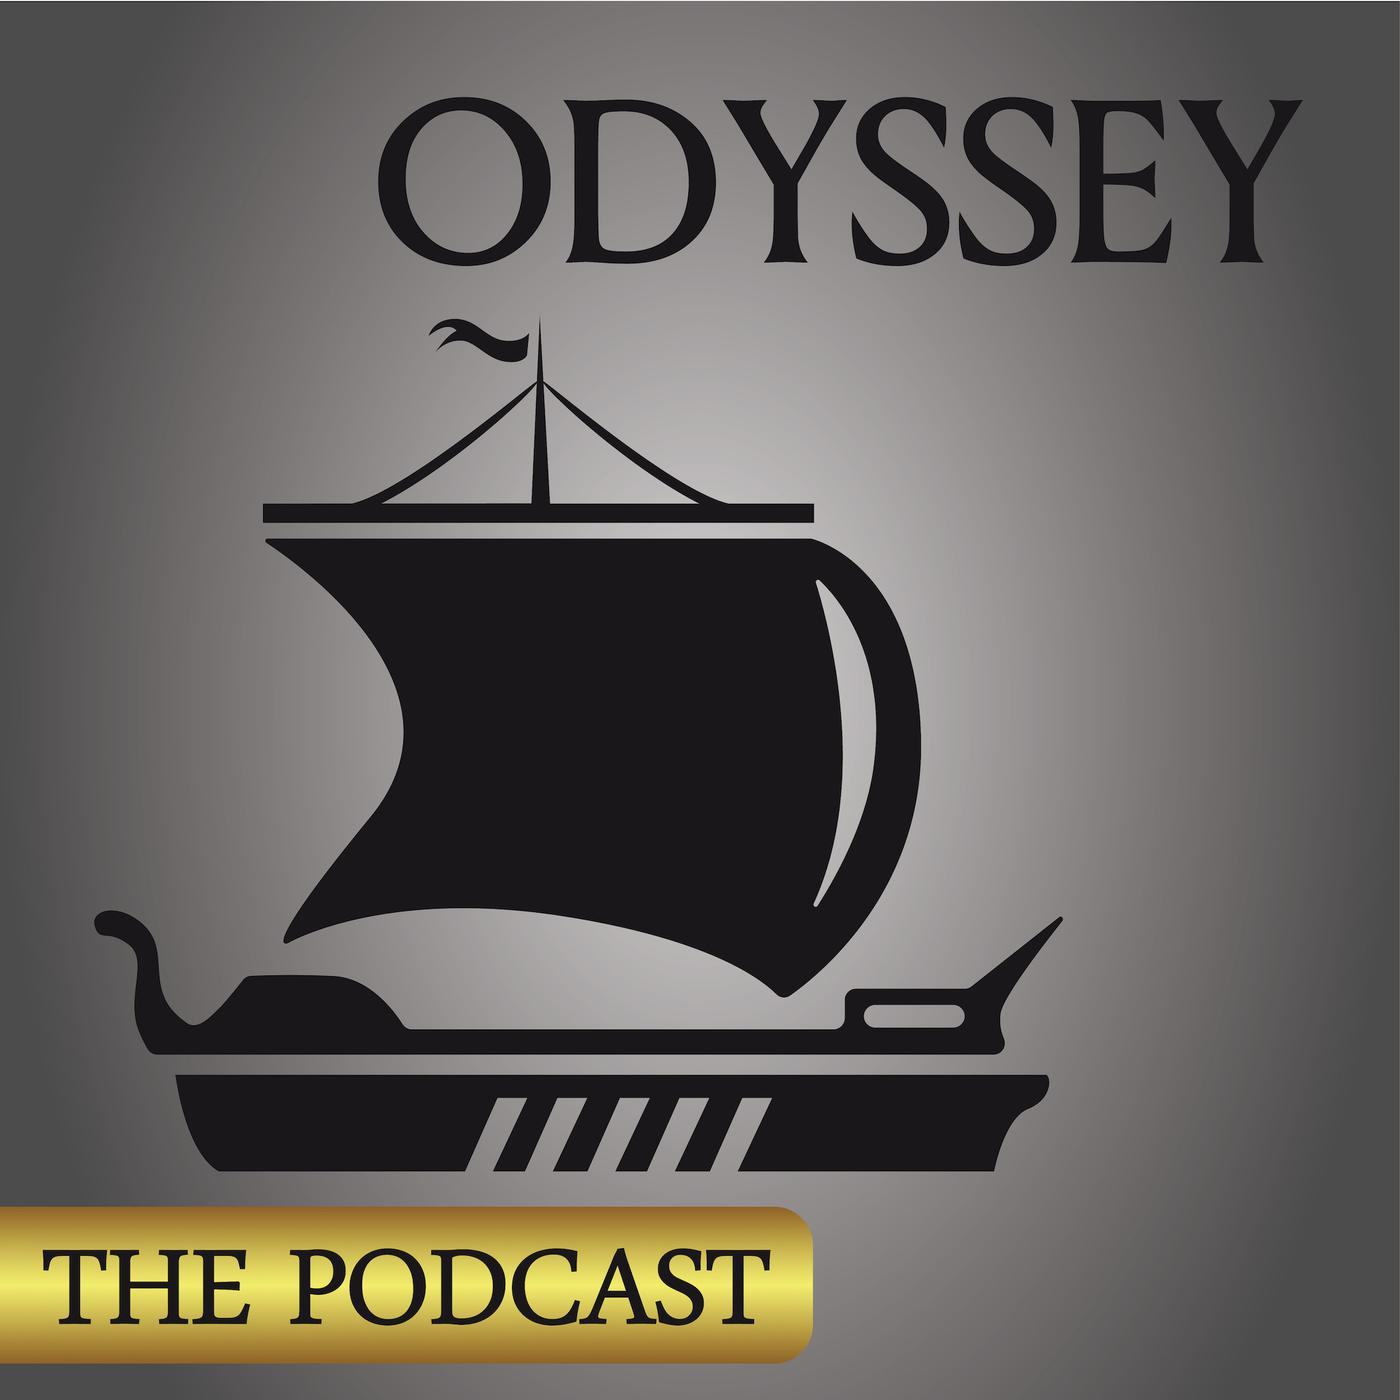 ODYSSEY: THE PODCAST - Jeff Wright   Listen Notes